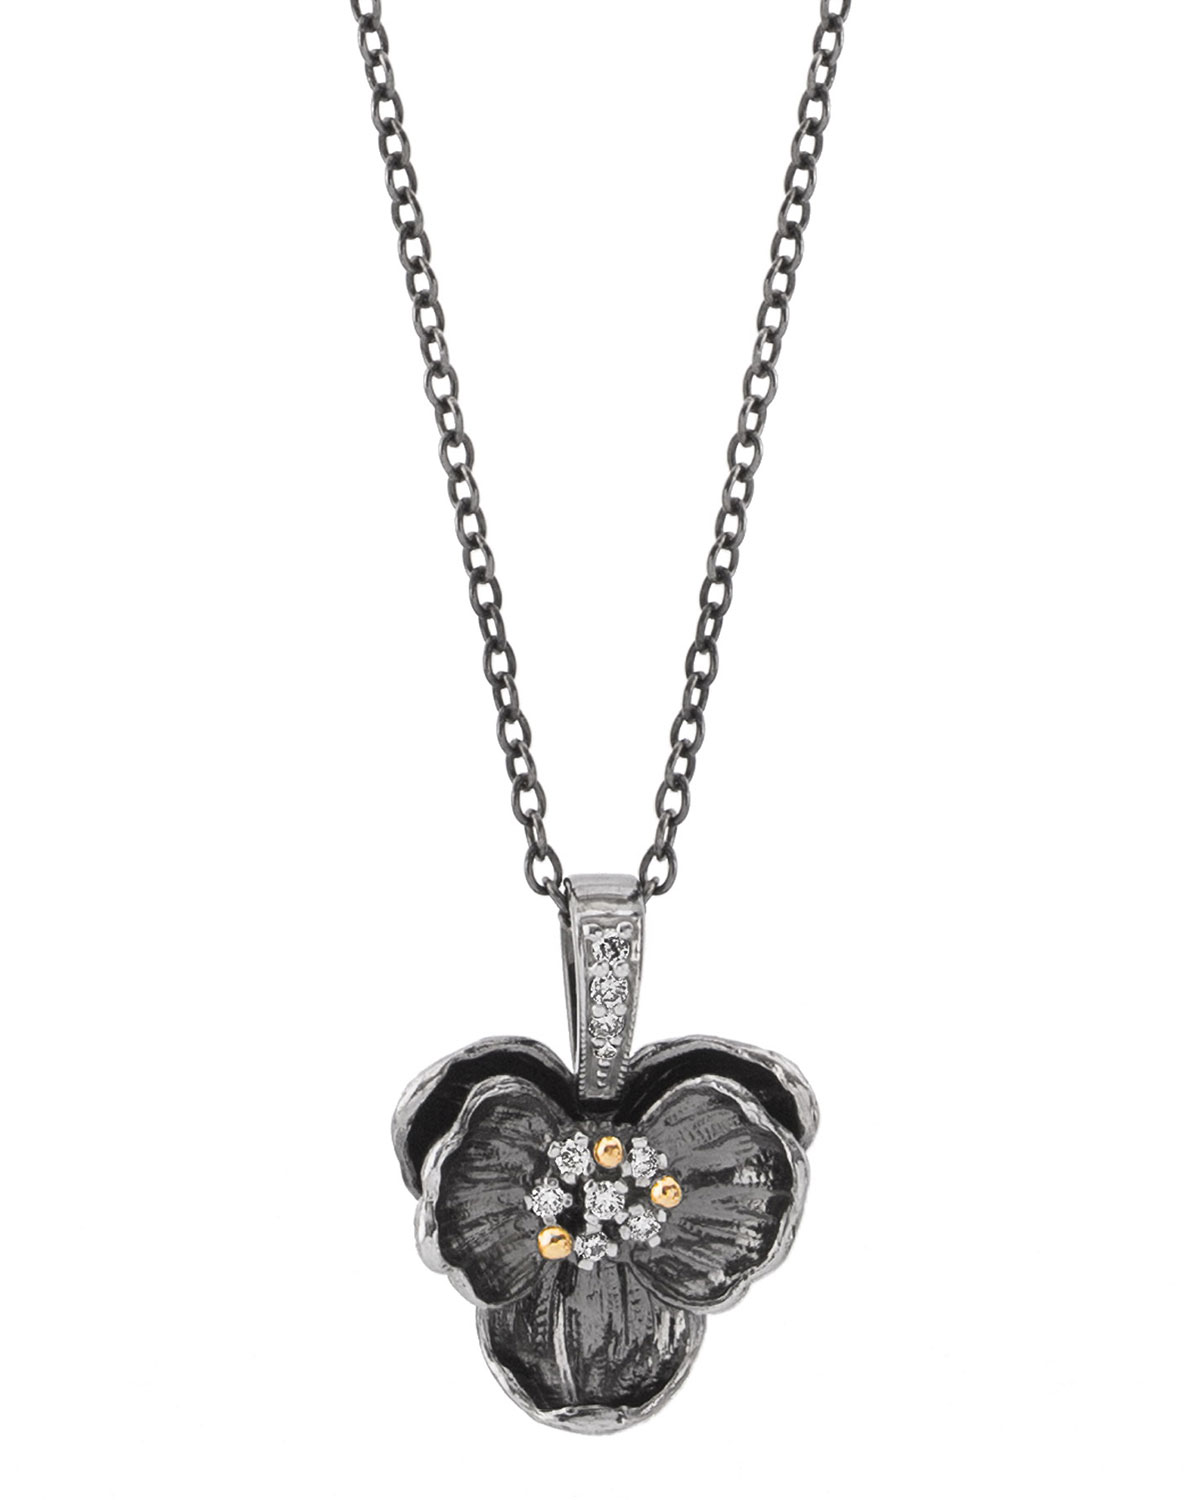 Orchid Trellis New Diamontrigue Jewelry: Michael Aram Black Medium Orchid Pendant Necklace W